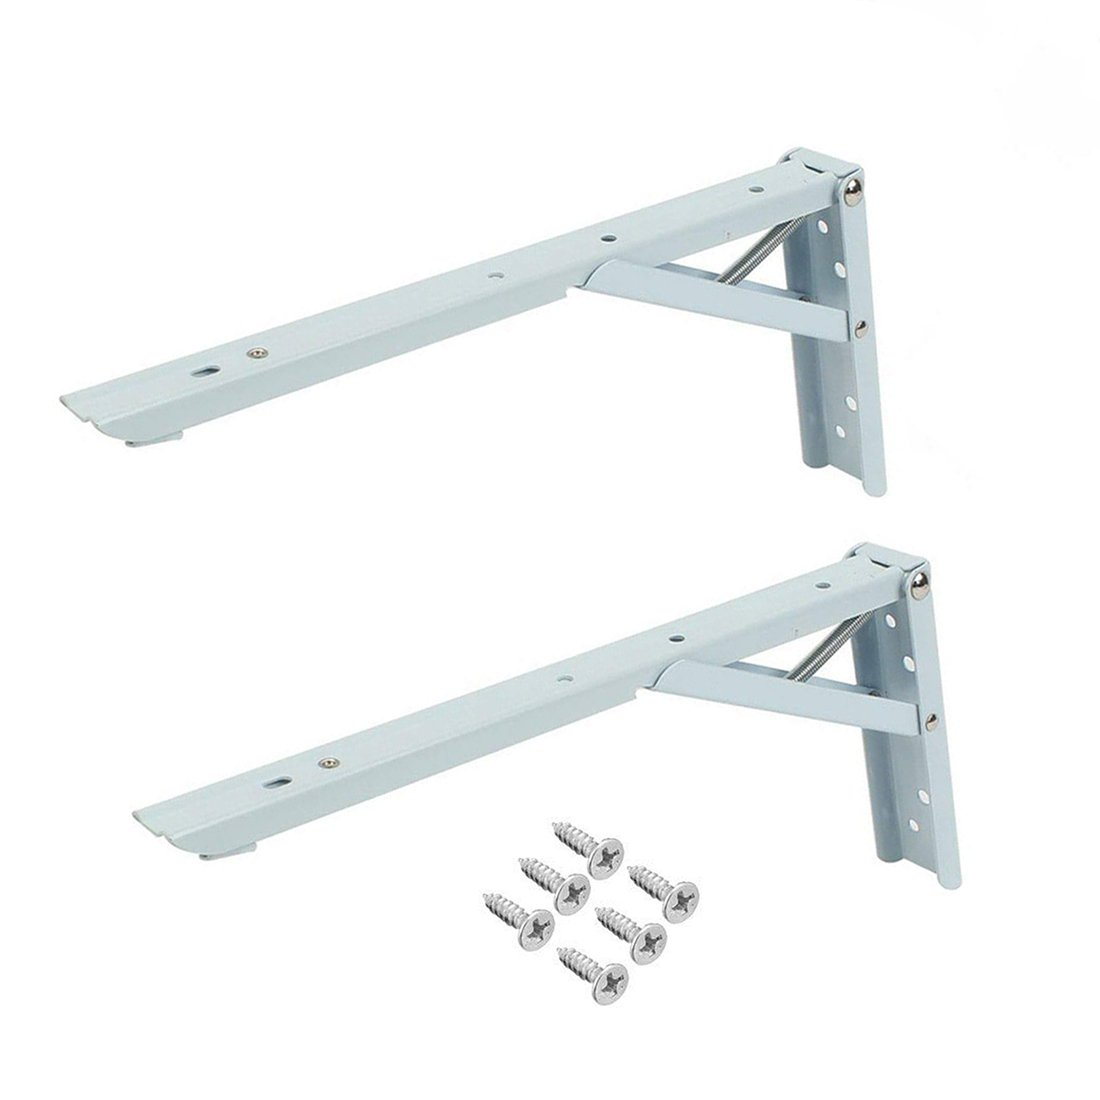 Rannb 2Pcs 12 inch Spring Loaded Sturdy Folding Shelf Support Brackets Short Release Arm with Screws for Work Bench Table